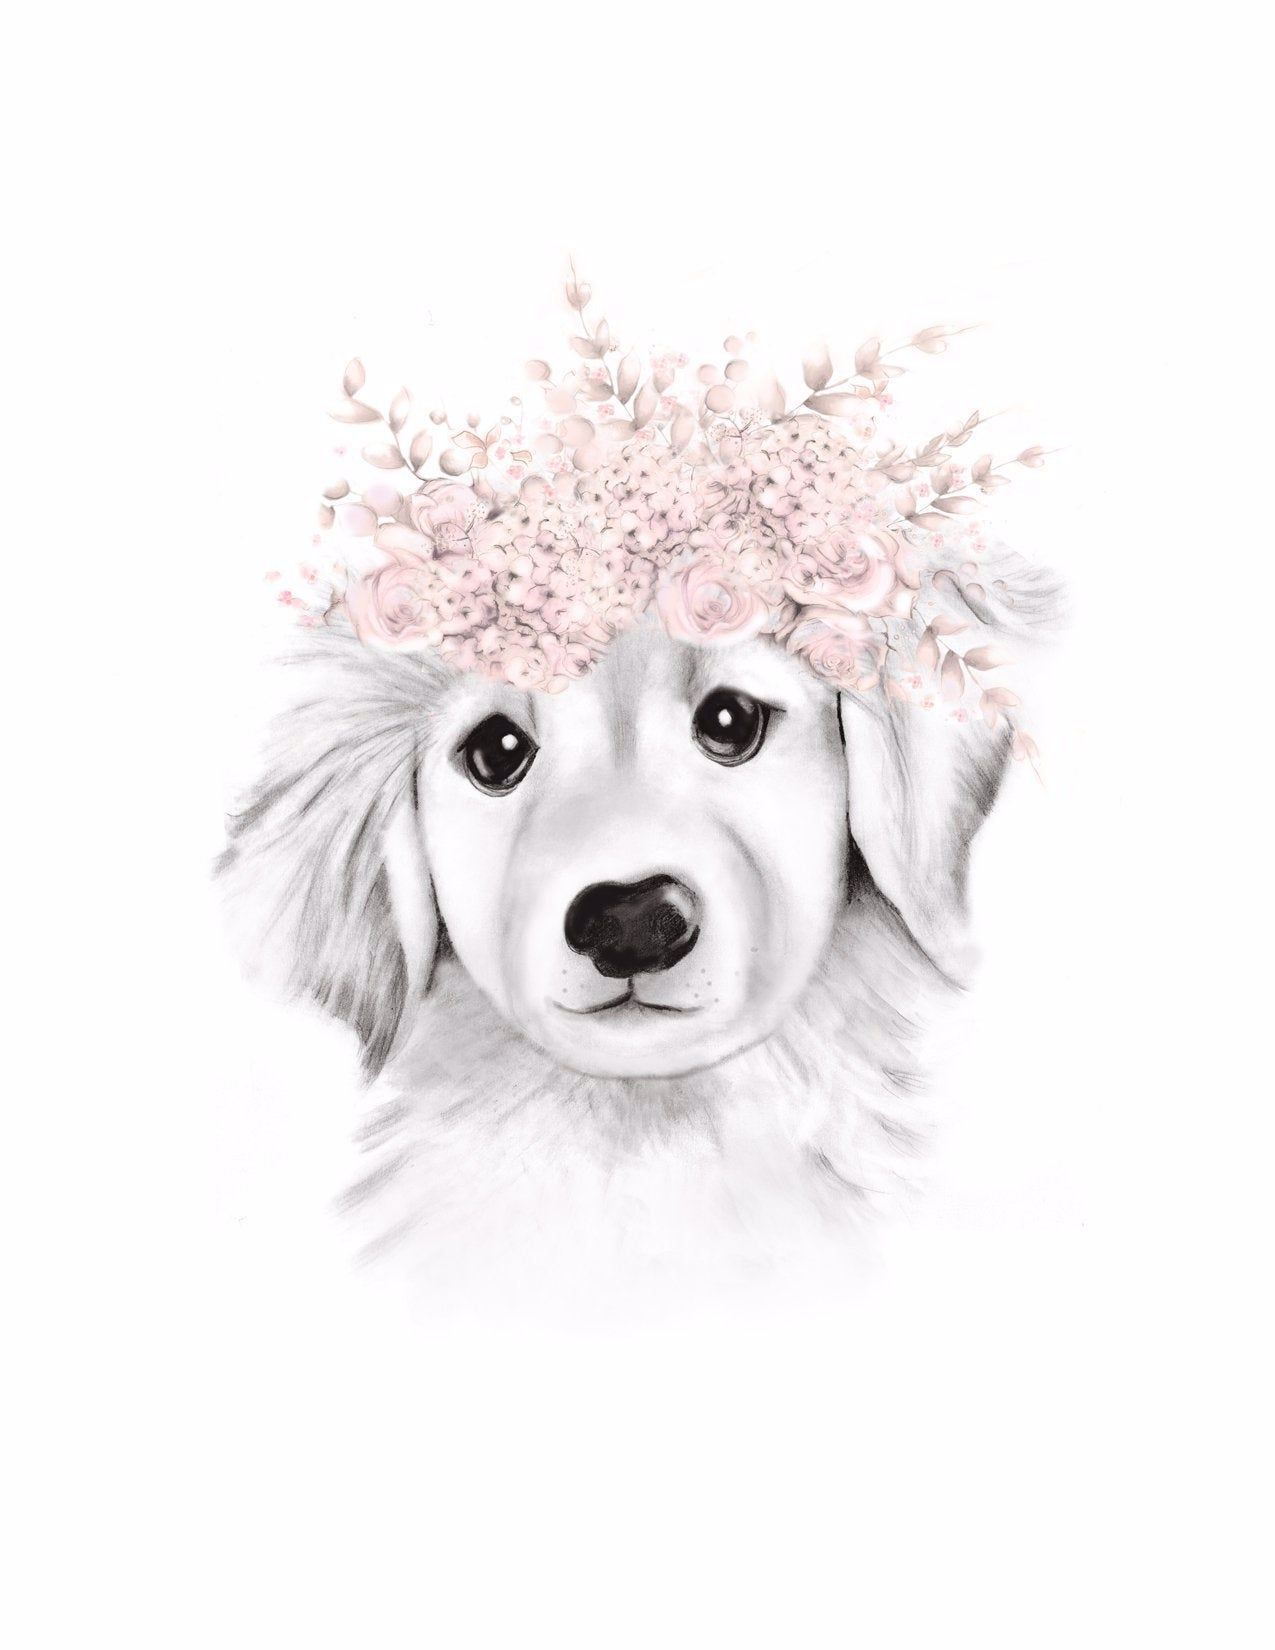 Puppy Flower Crown Print by Nicky